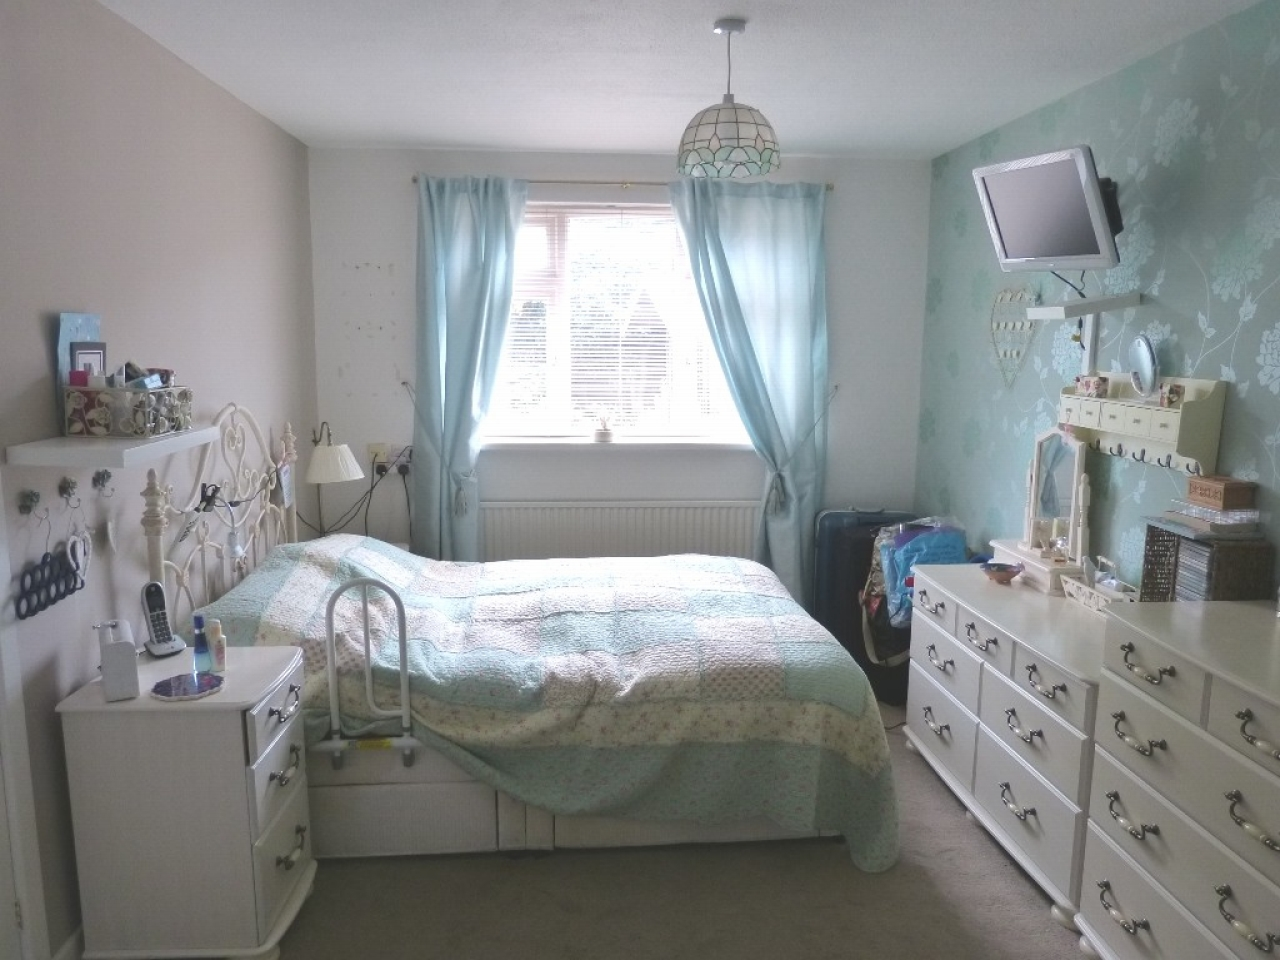 4 bedroom detached bungalow SSTC in Abergele - Photograph 11